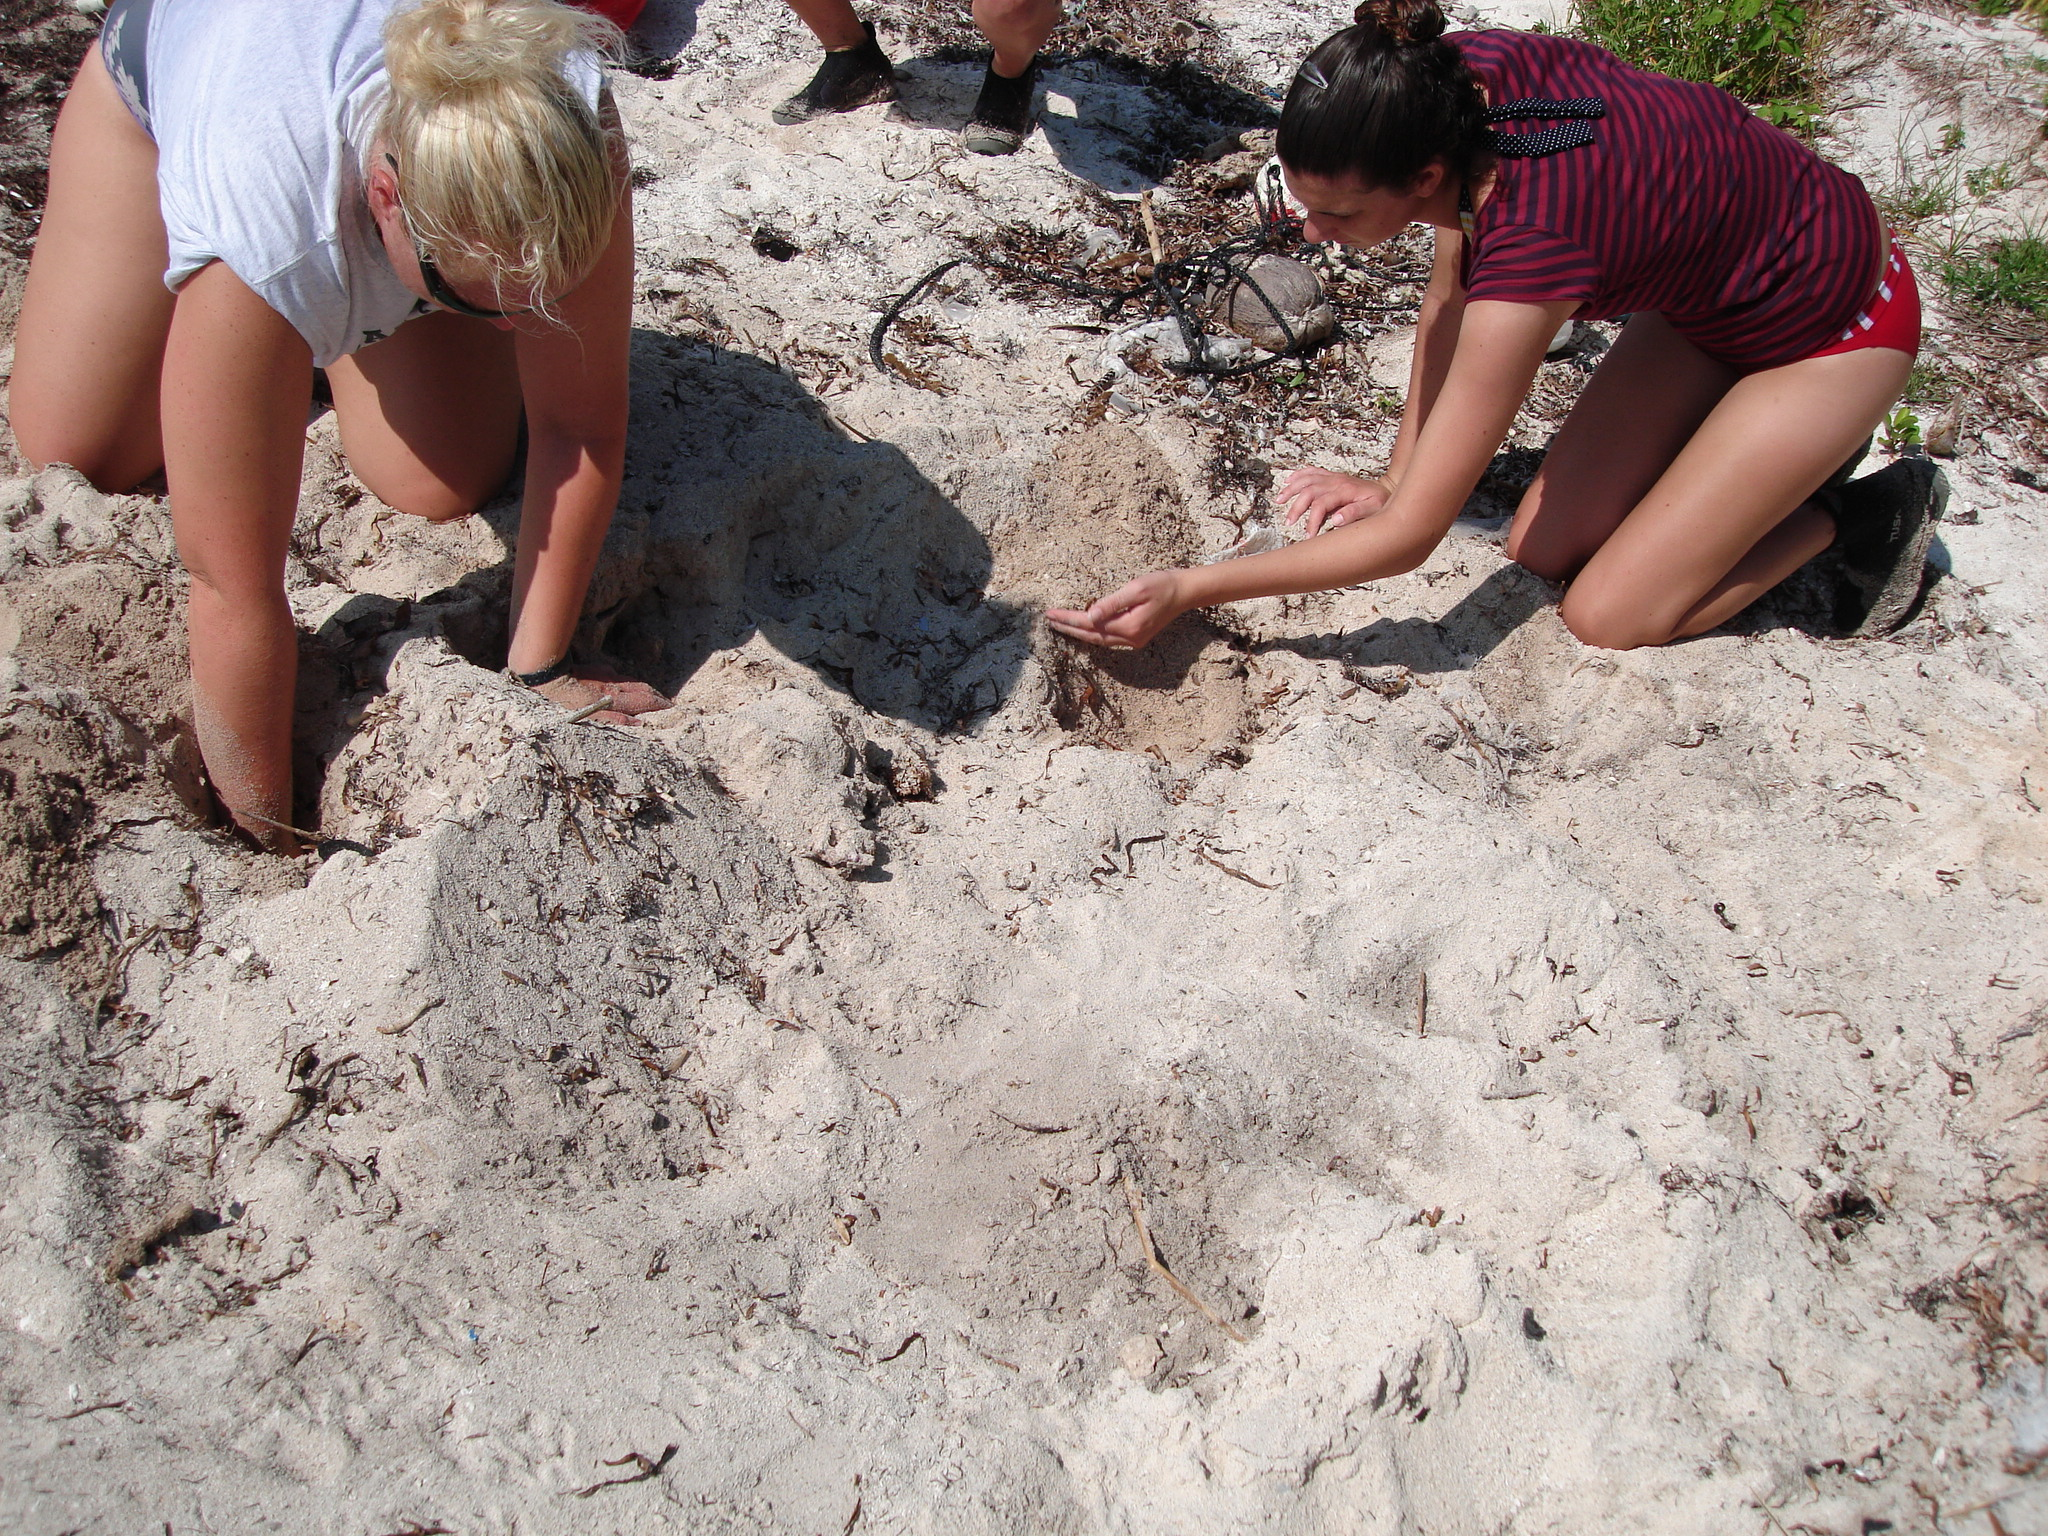 A park employee and a volunteer dig in the sand to locate the exact position of a sea turtle nest so that the protective mesh screen can be placed in the proper place